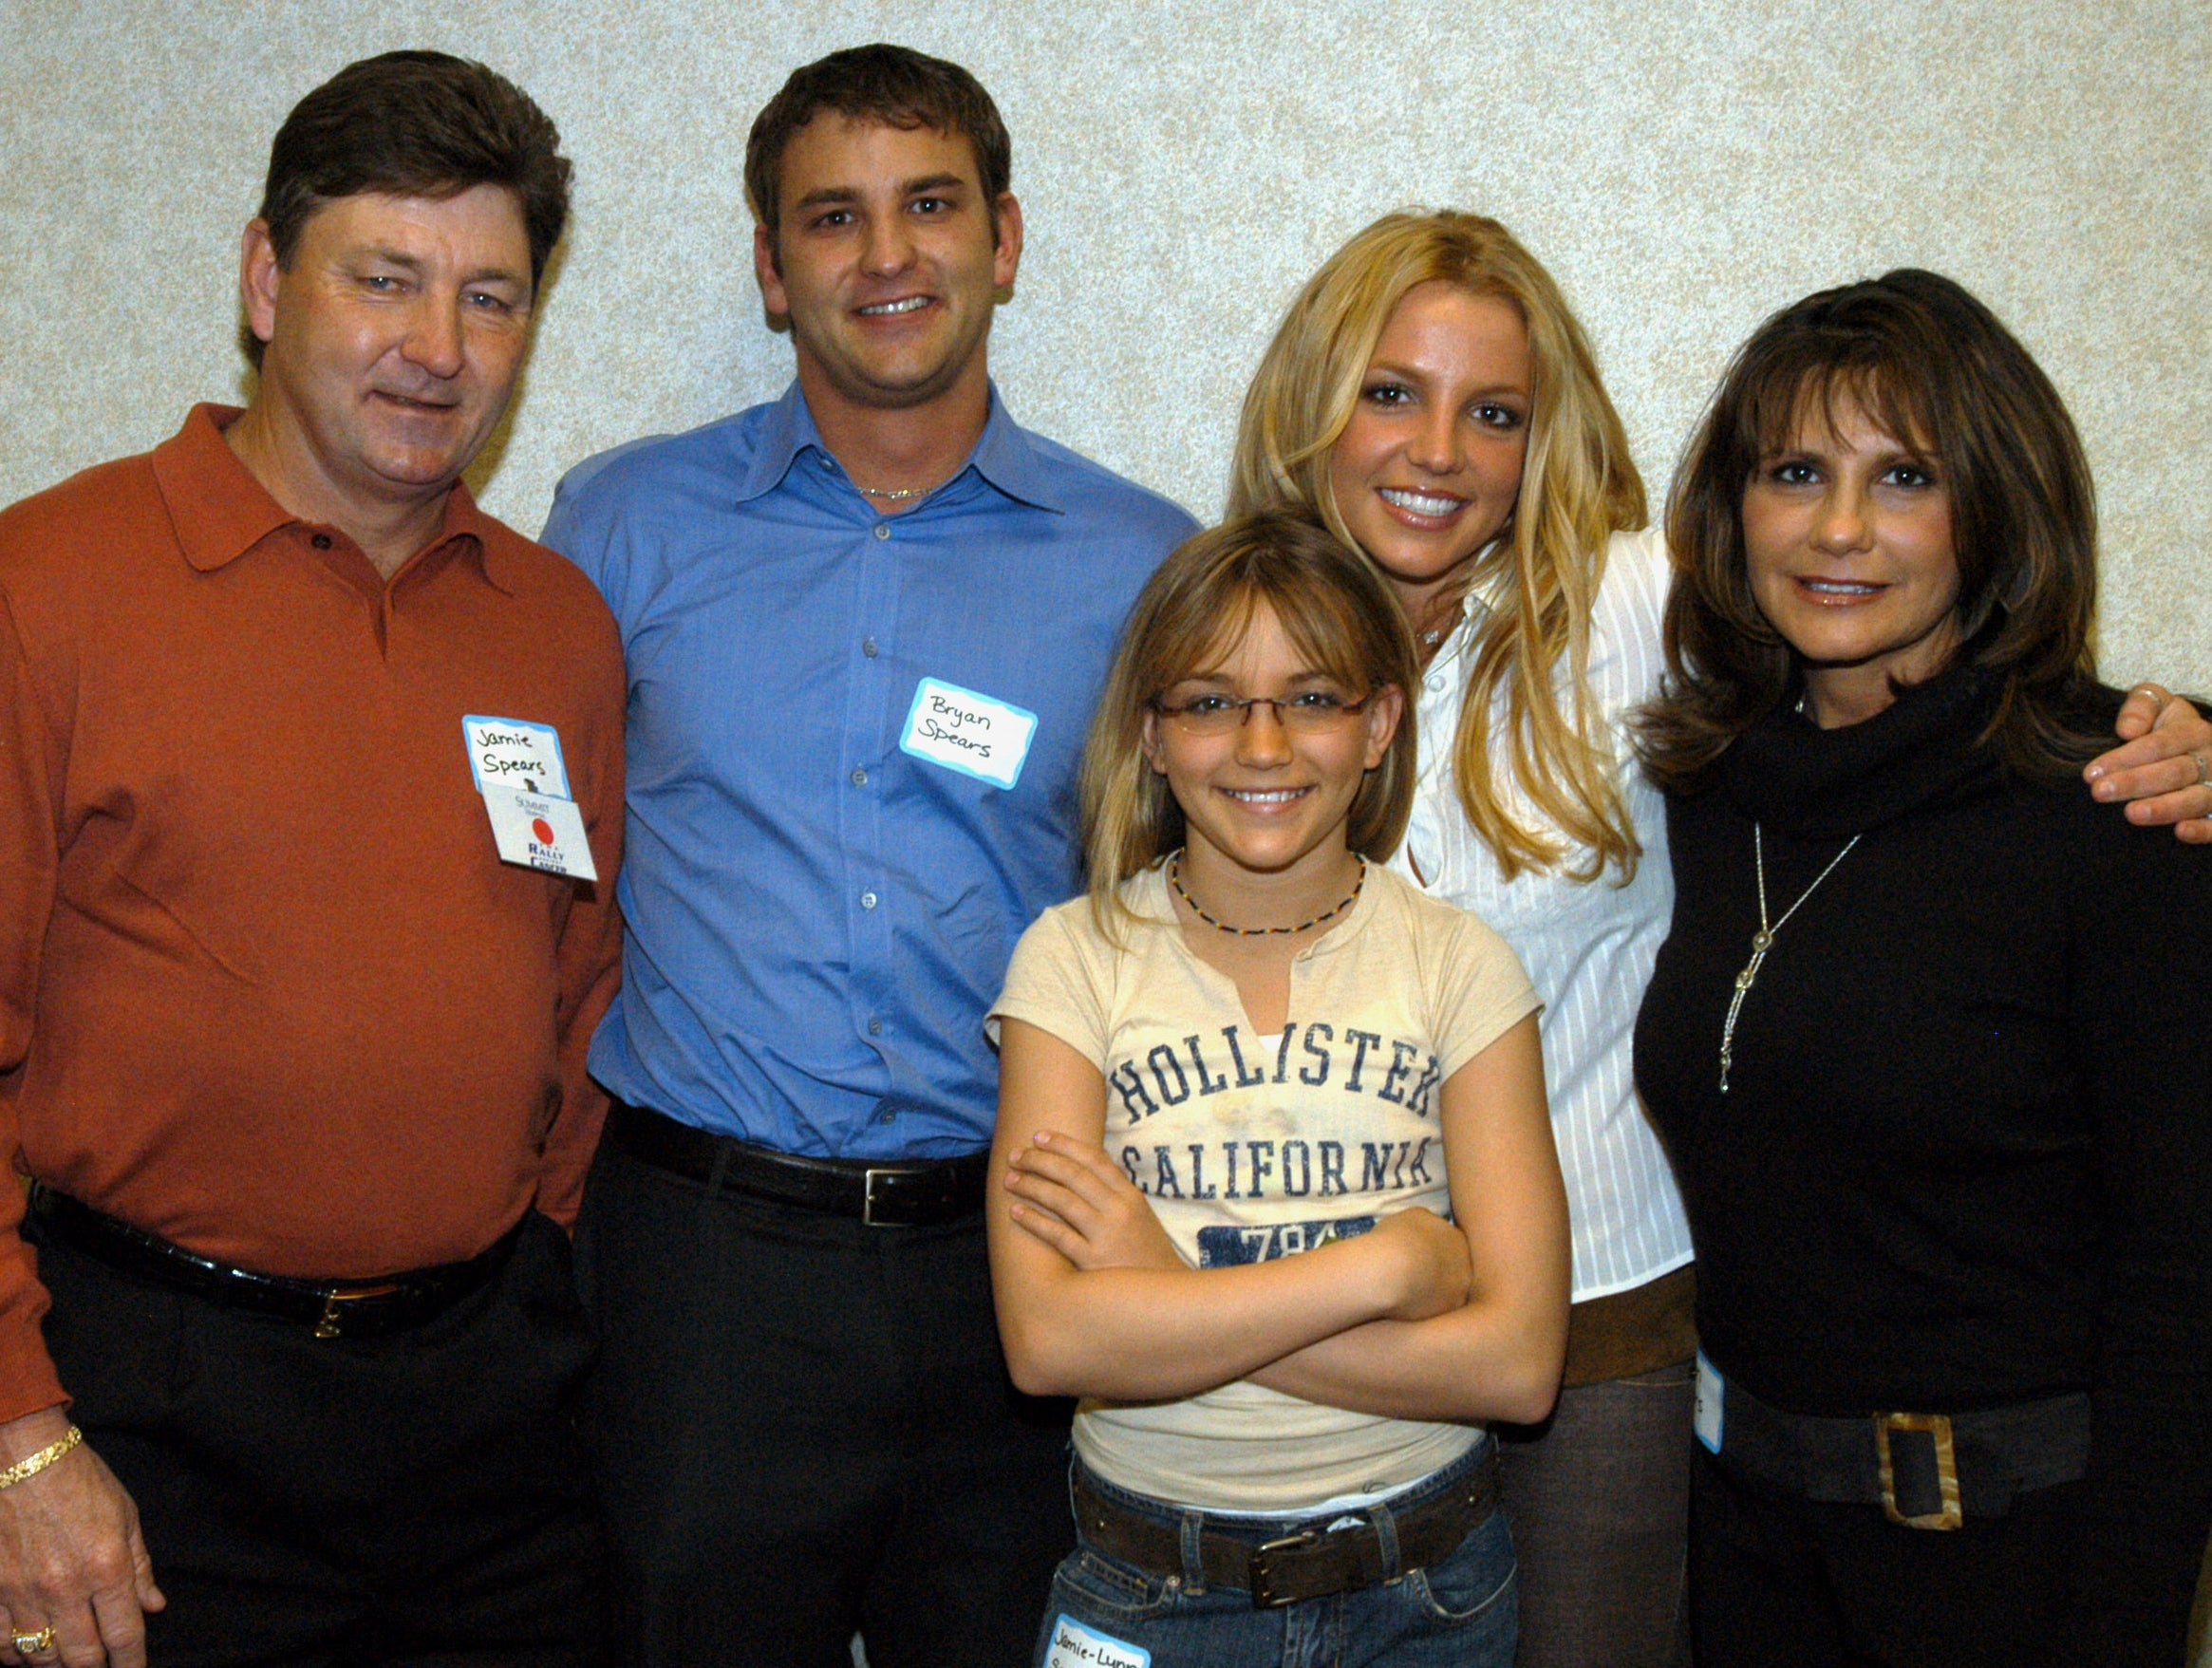 A portrait of Britney's entire family from many years ago